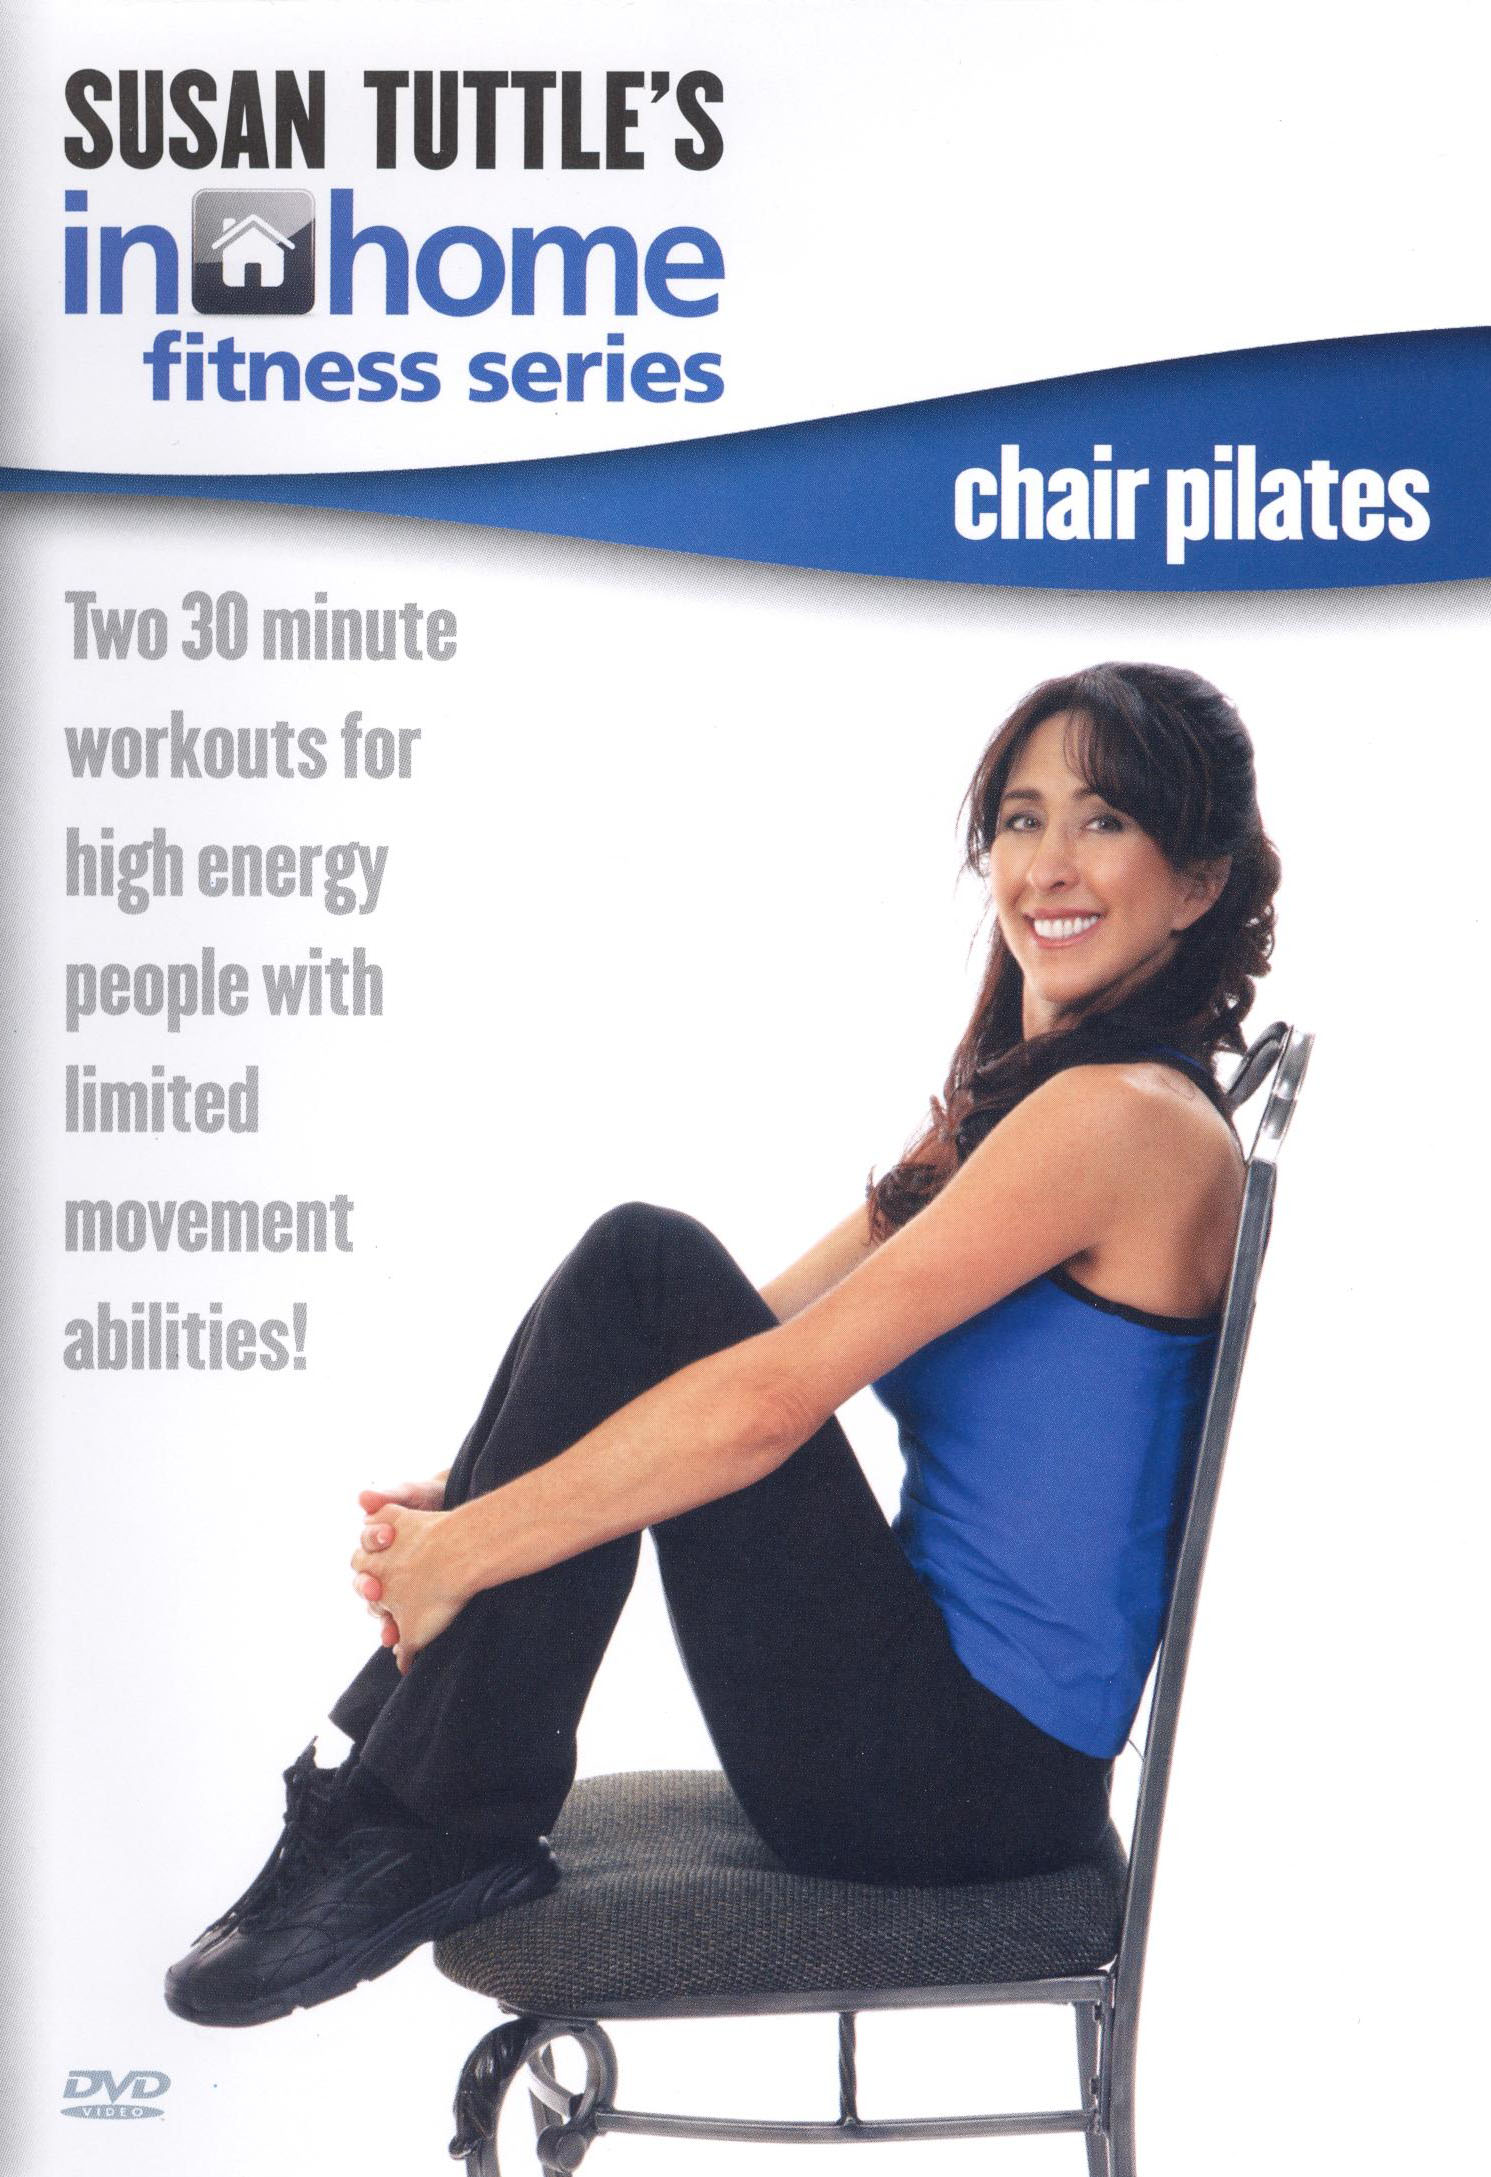 chair gym dvd set swing warehouse best buy susan tuttle 39s in home fitness pilates